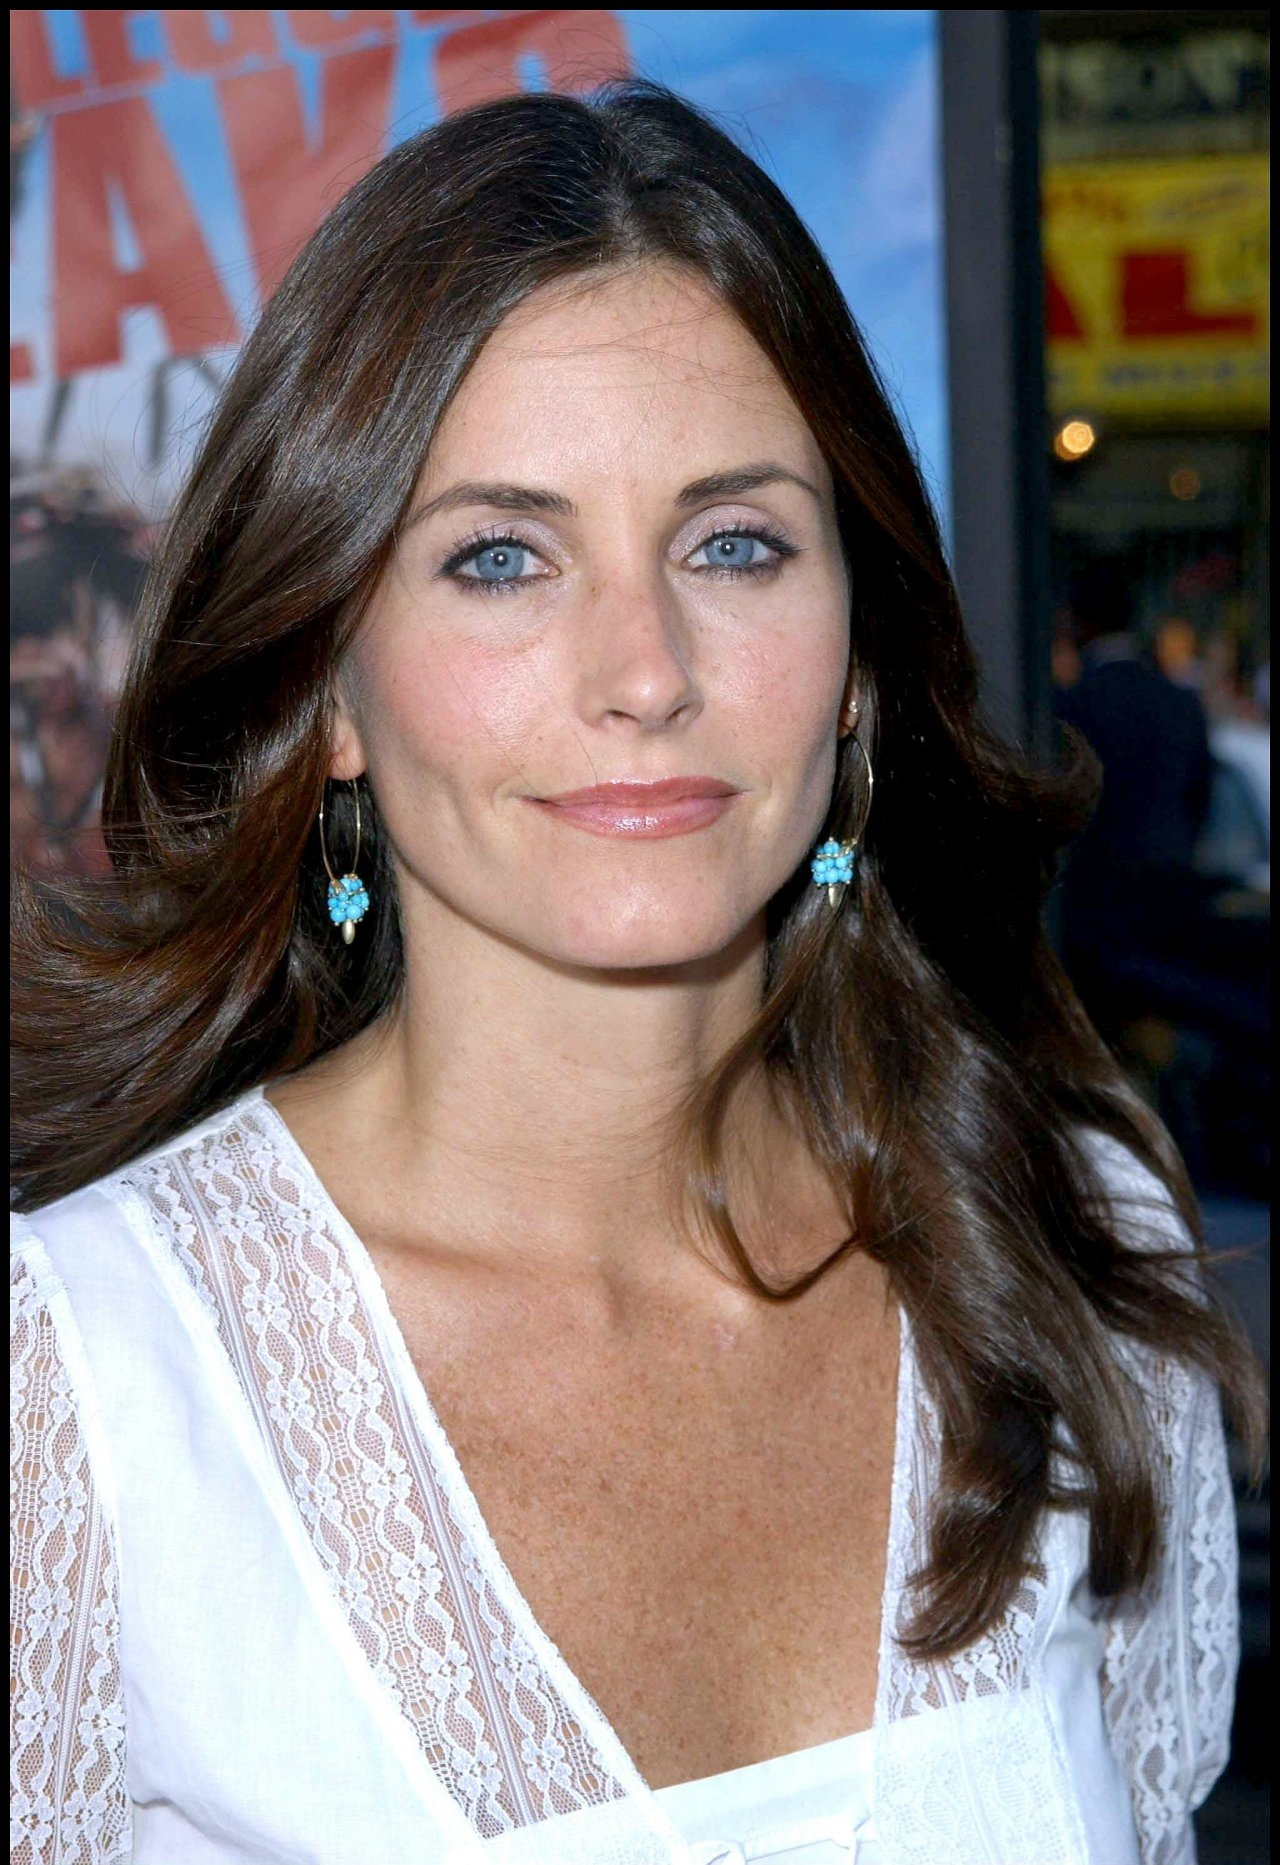 Courteney Cox leaked wallpapers